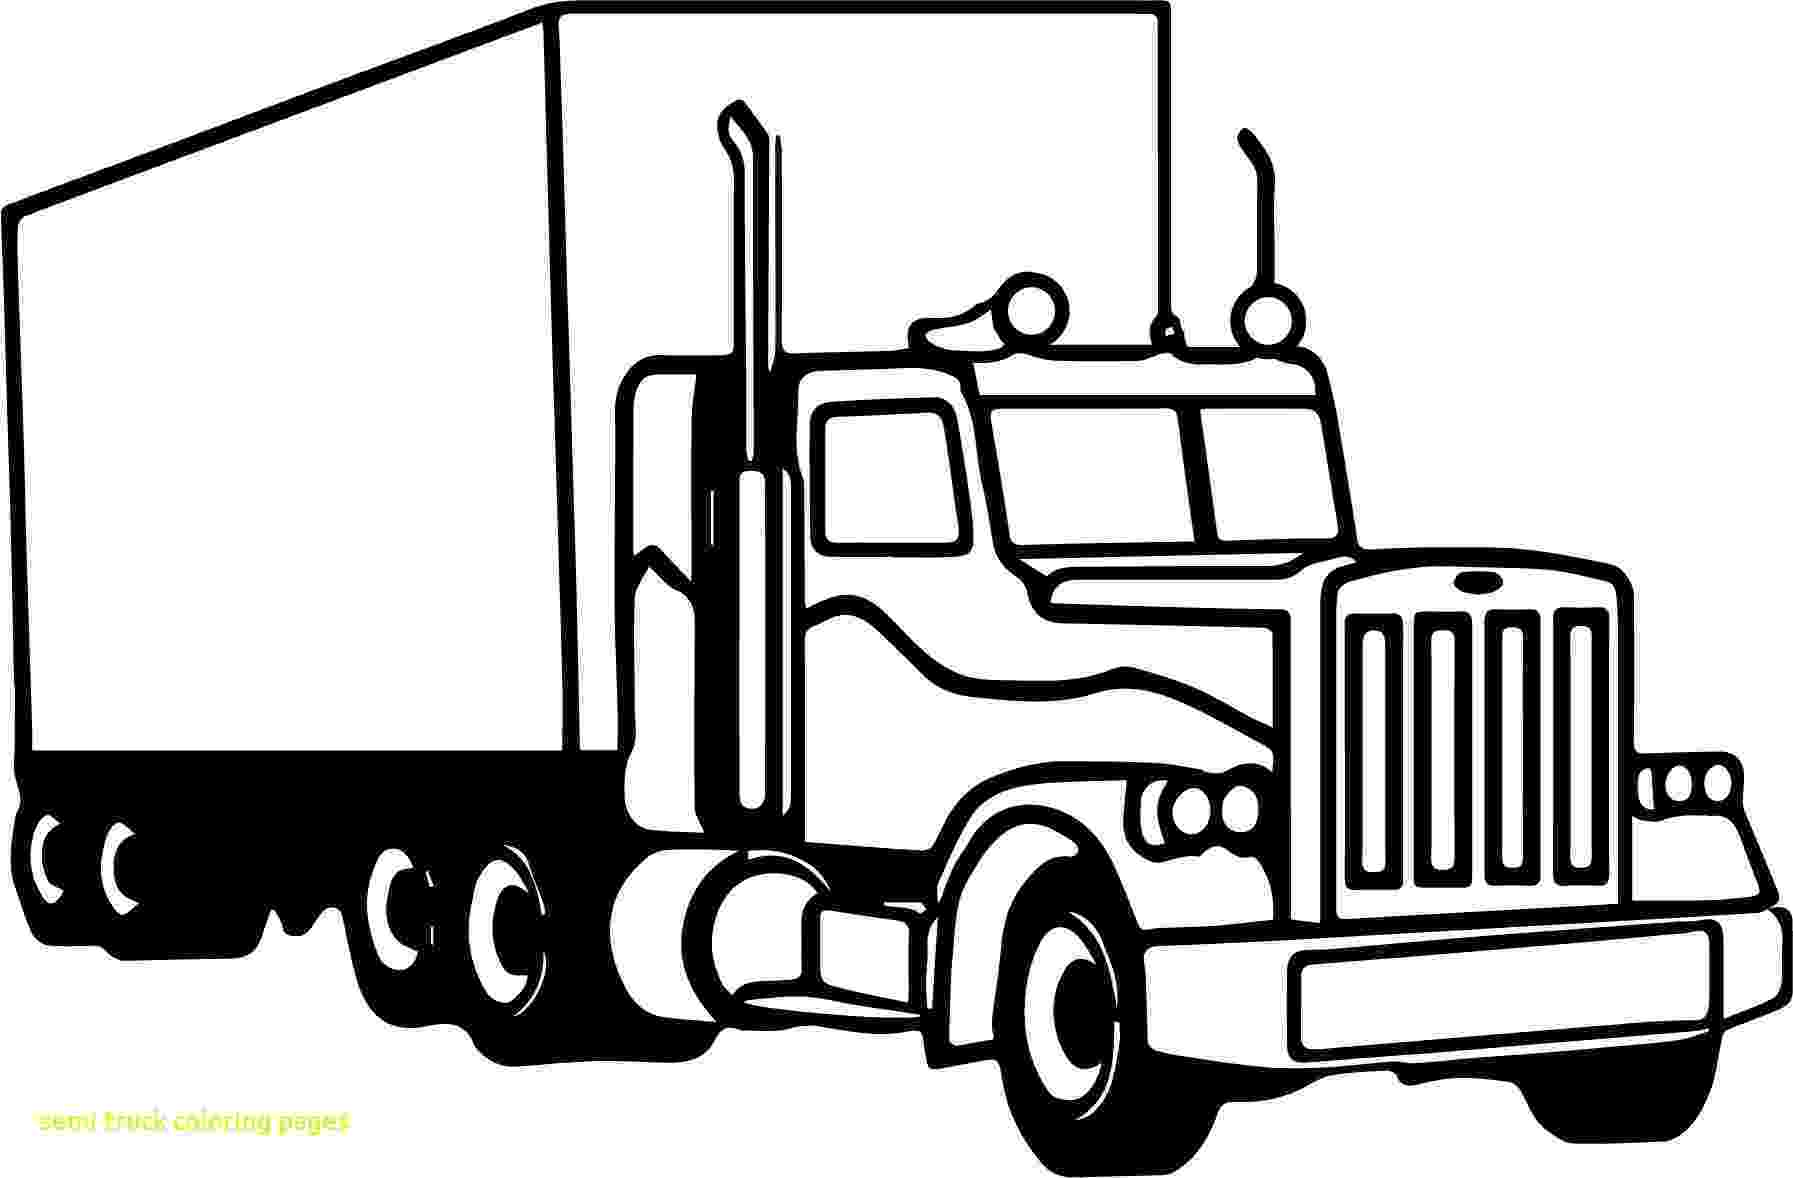 coloring pages of semi trucks semi truck coloring pages to print free coloring books semi of coloring trucks pages